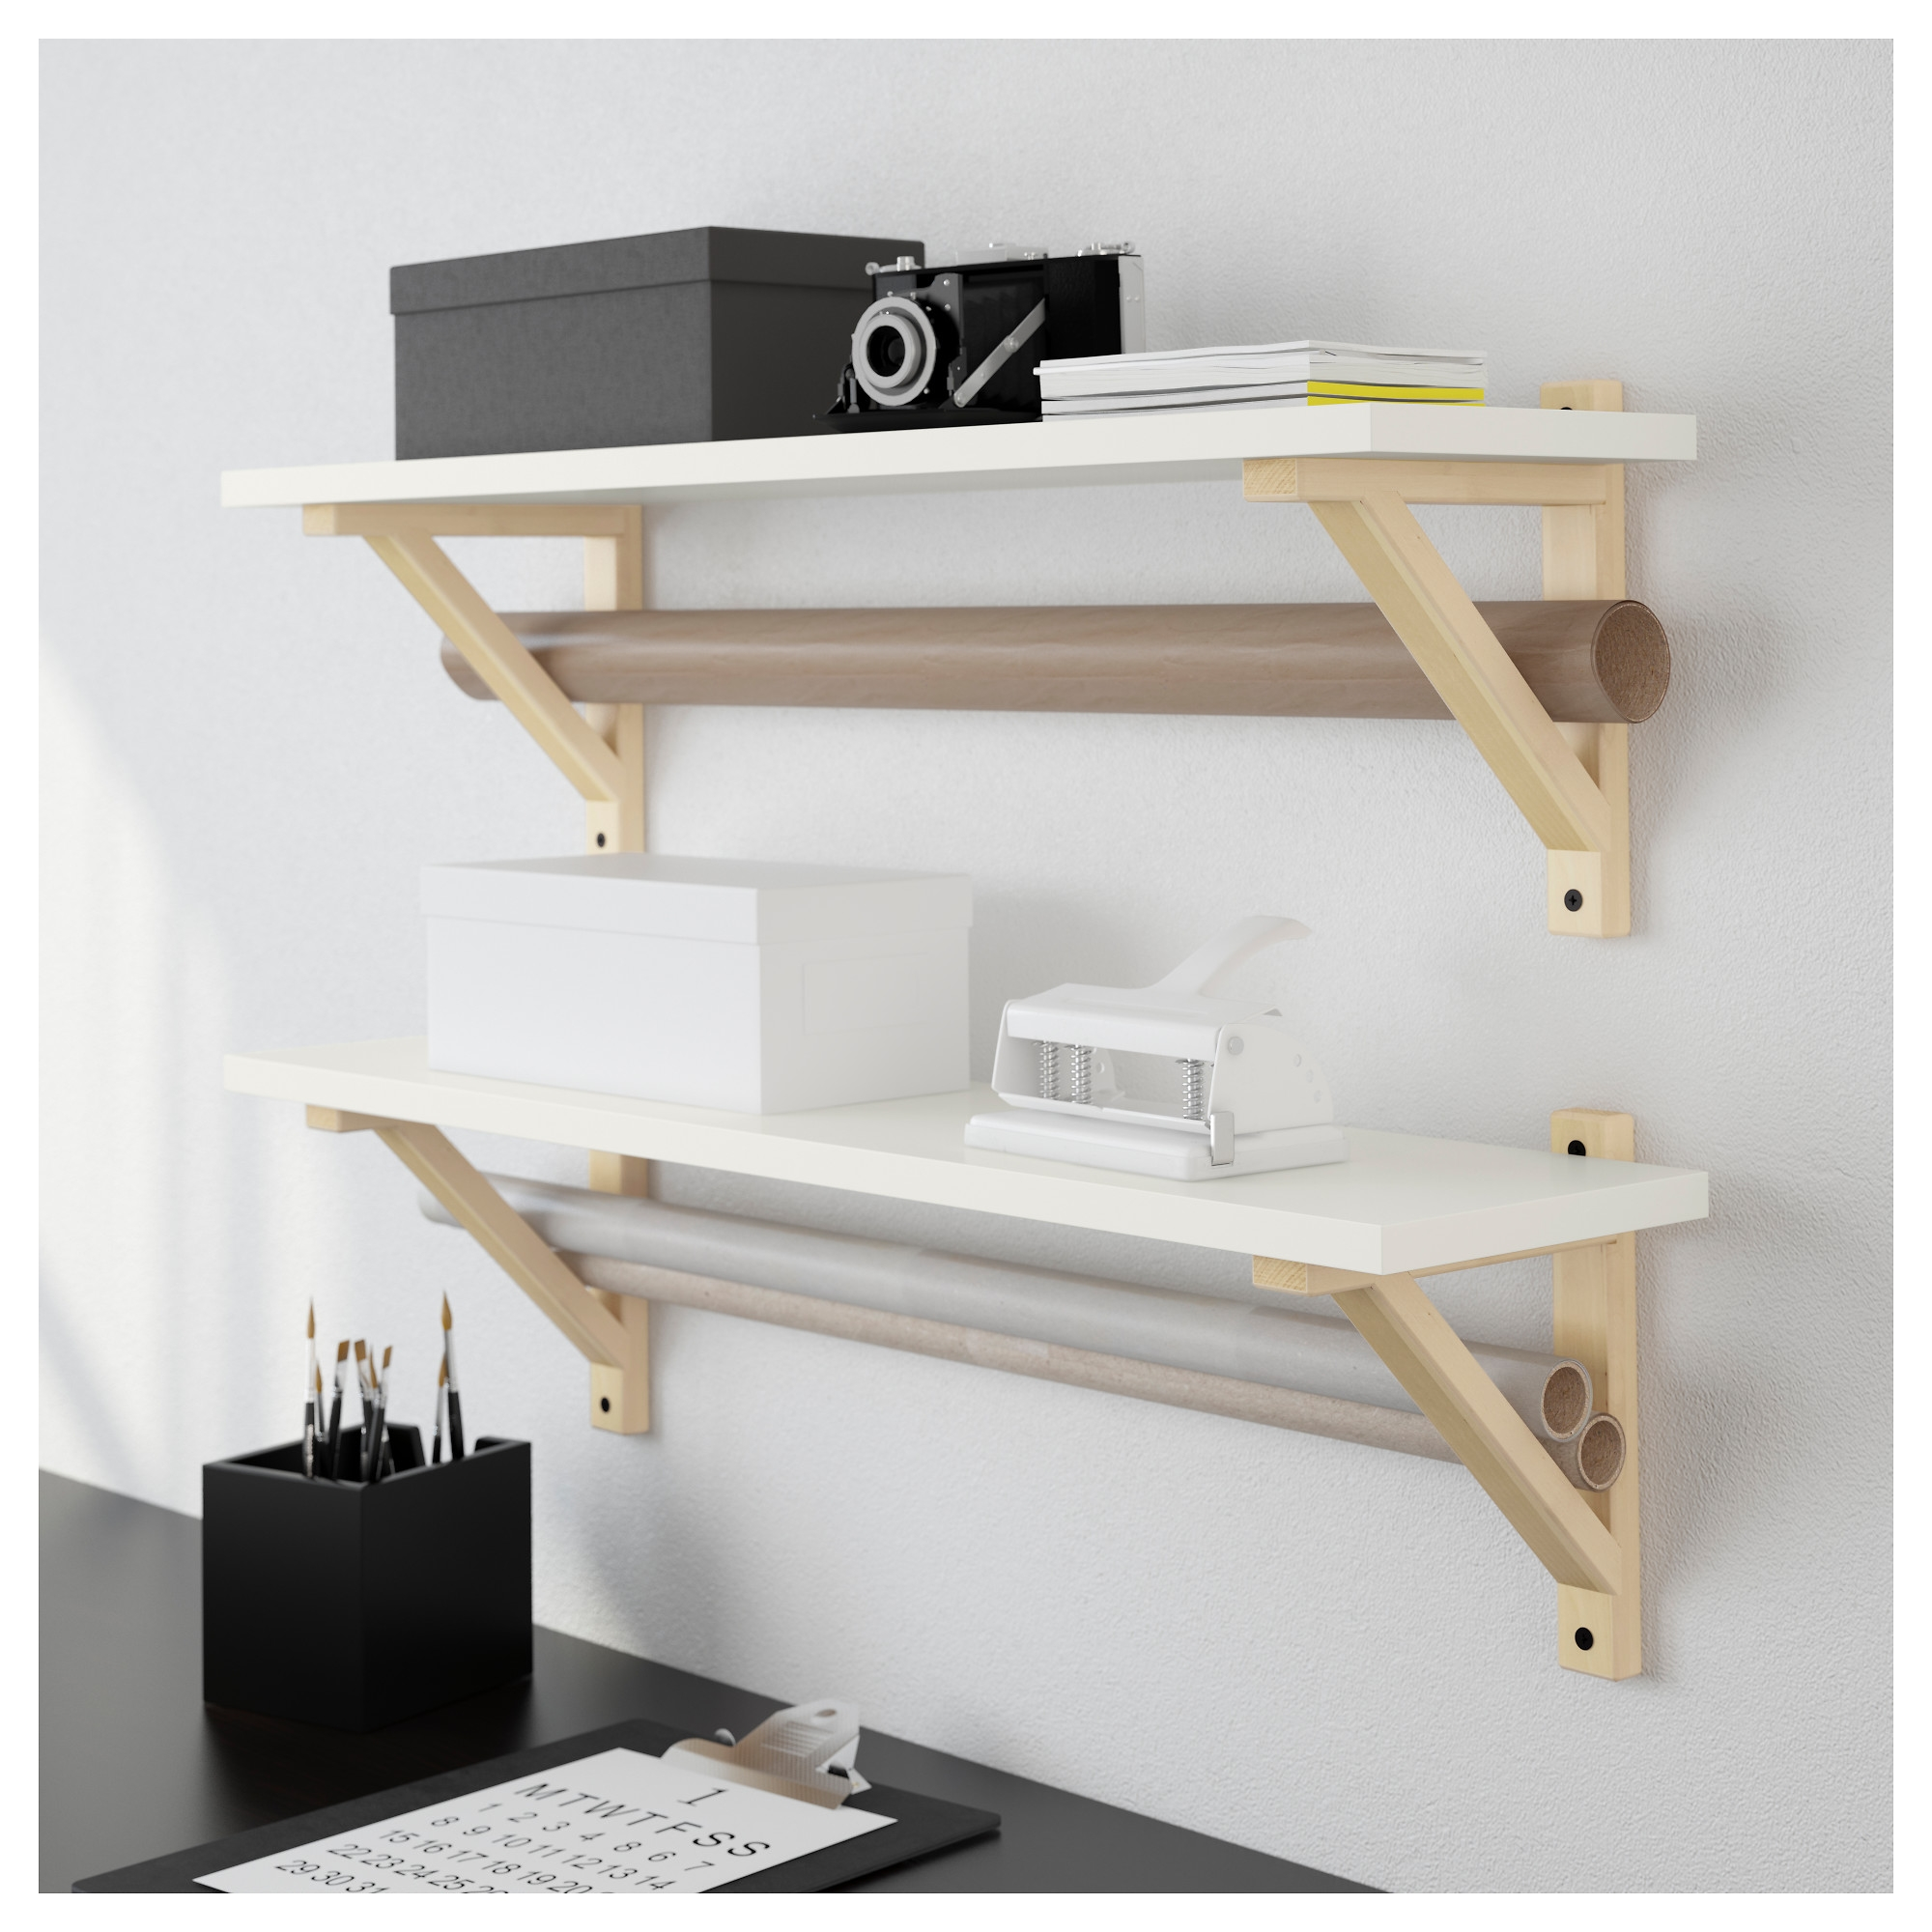 Ek Sten Ek Valter Wall Shelf Ikea With Wall Shelves (#5 of 12)